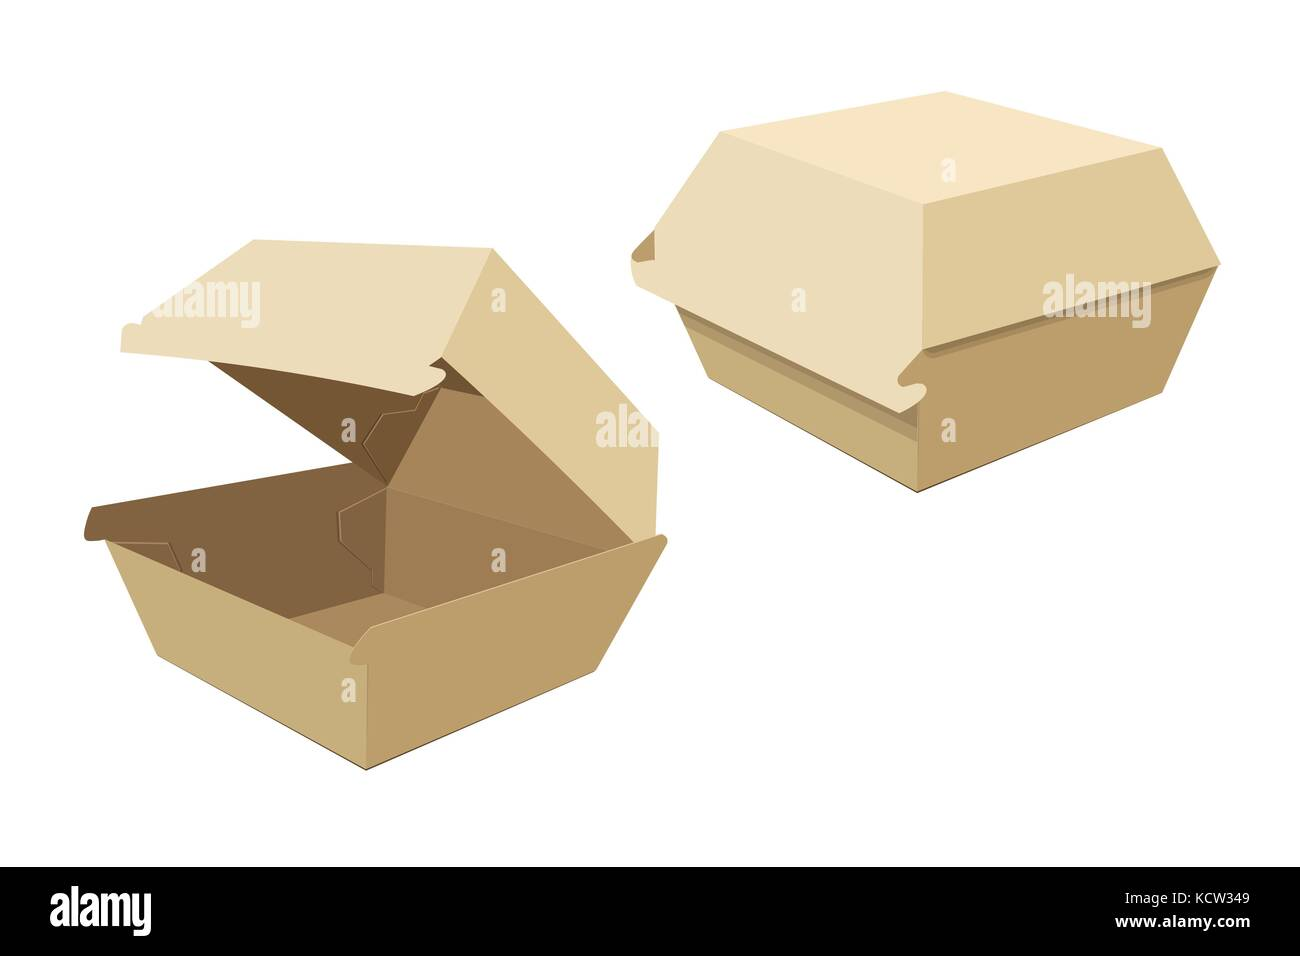 Beige Boxes For Hamburgers Storing Food Delivery Vector Stock